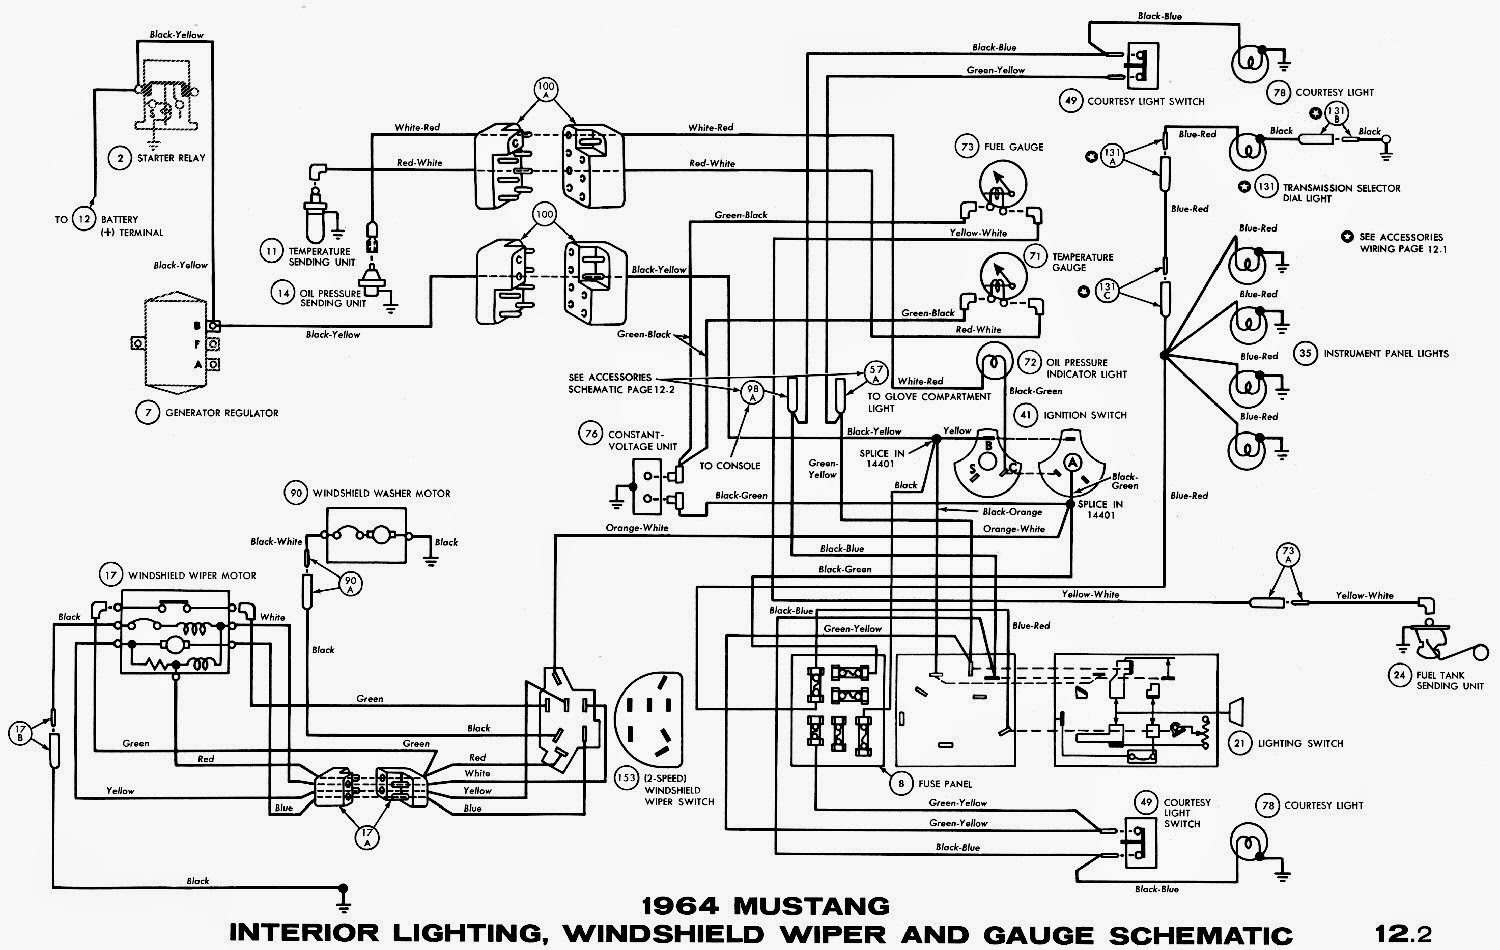 mustang fuse box location on 1970 mustang mach 1 fuse box diagram